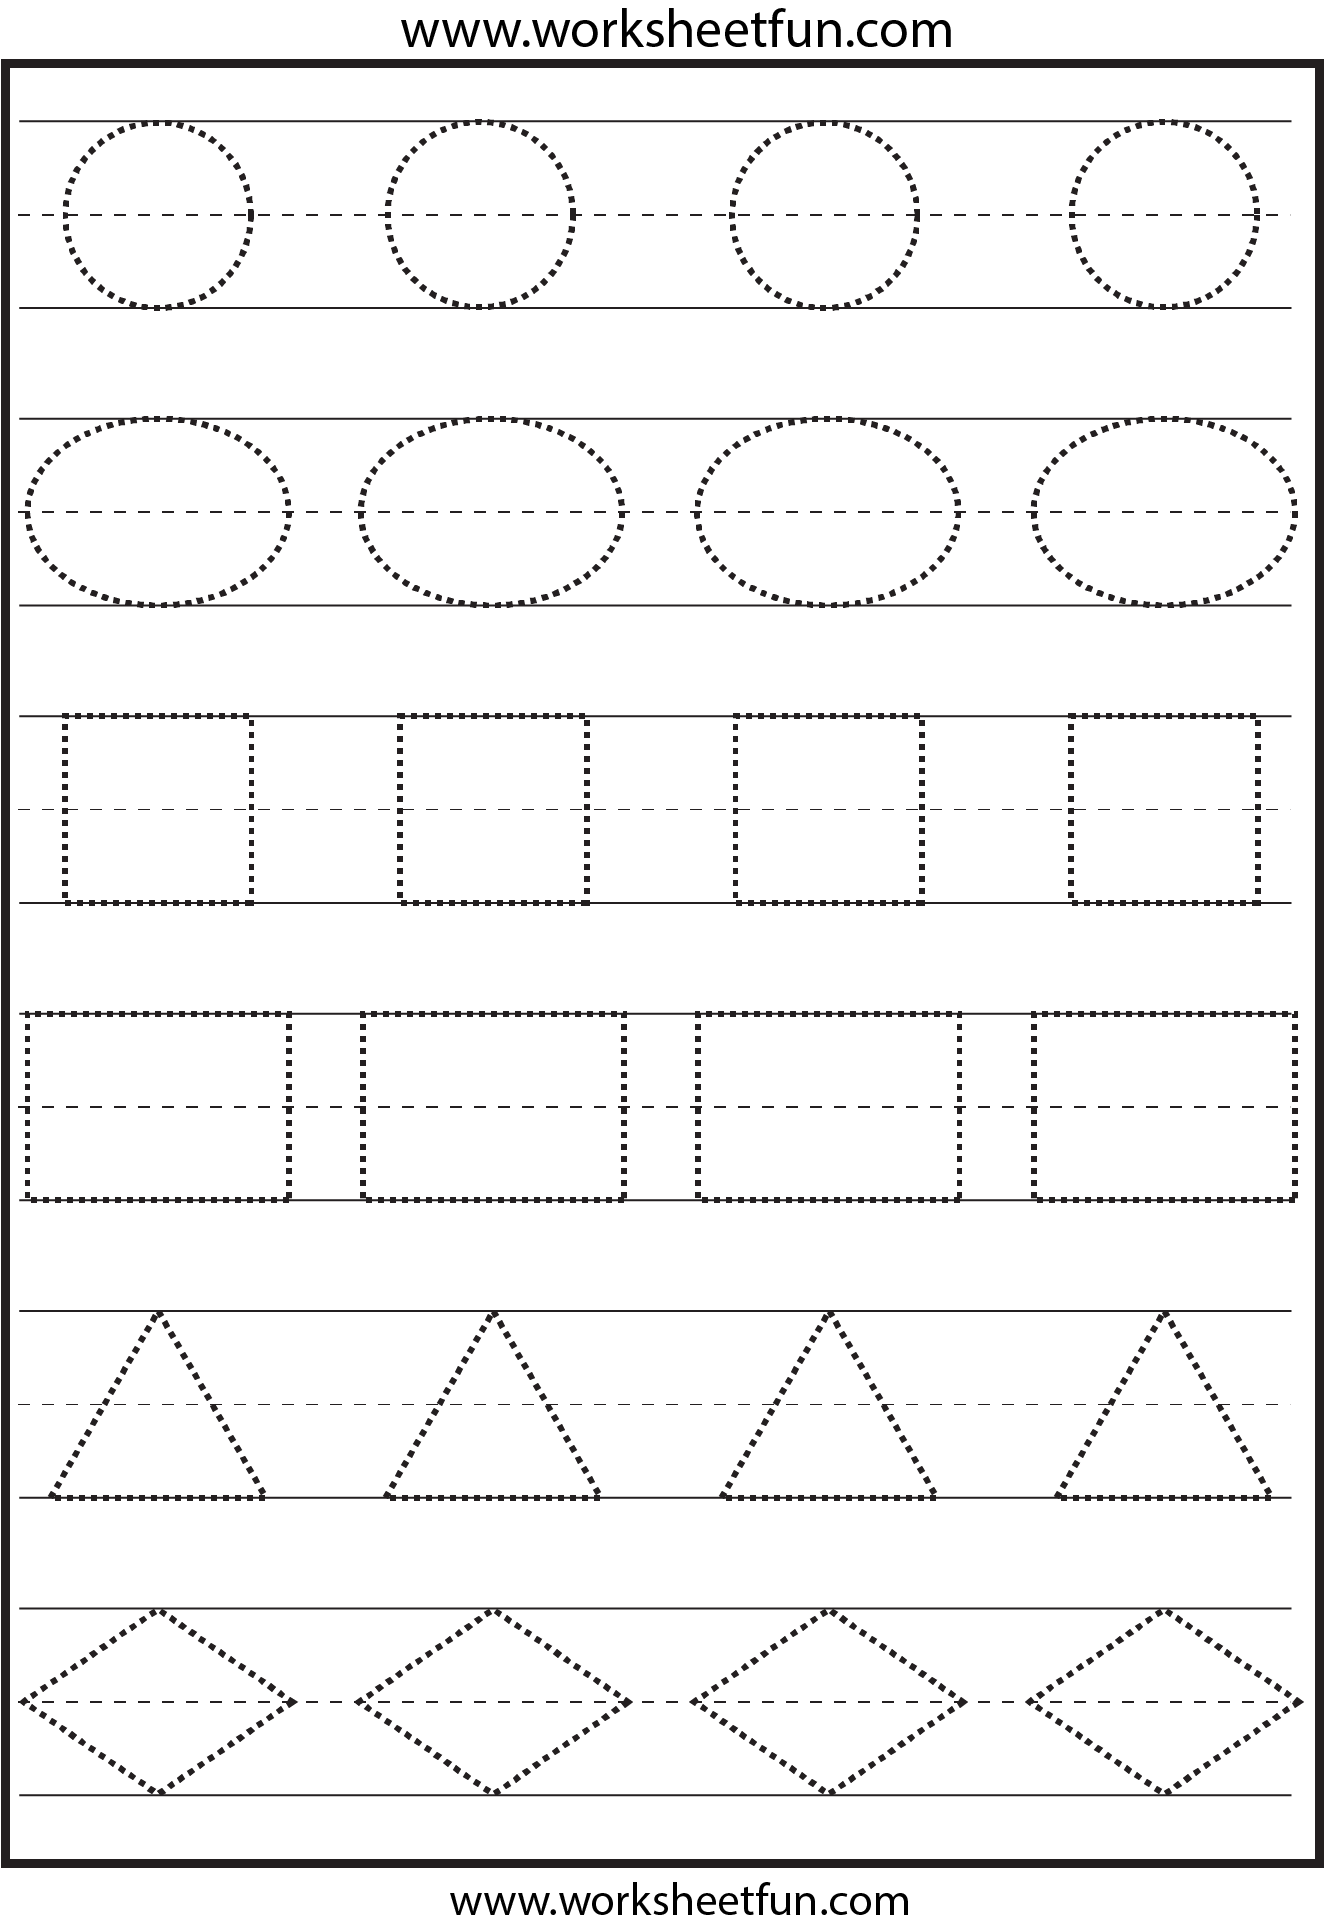 Printables Preschool Shapes Worksheets 1000 images about preschool shapes on pinterest trees felt hearts and shape